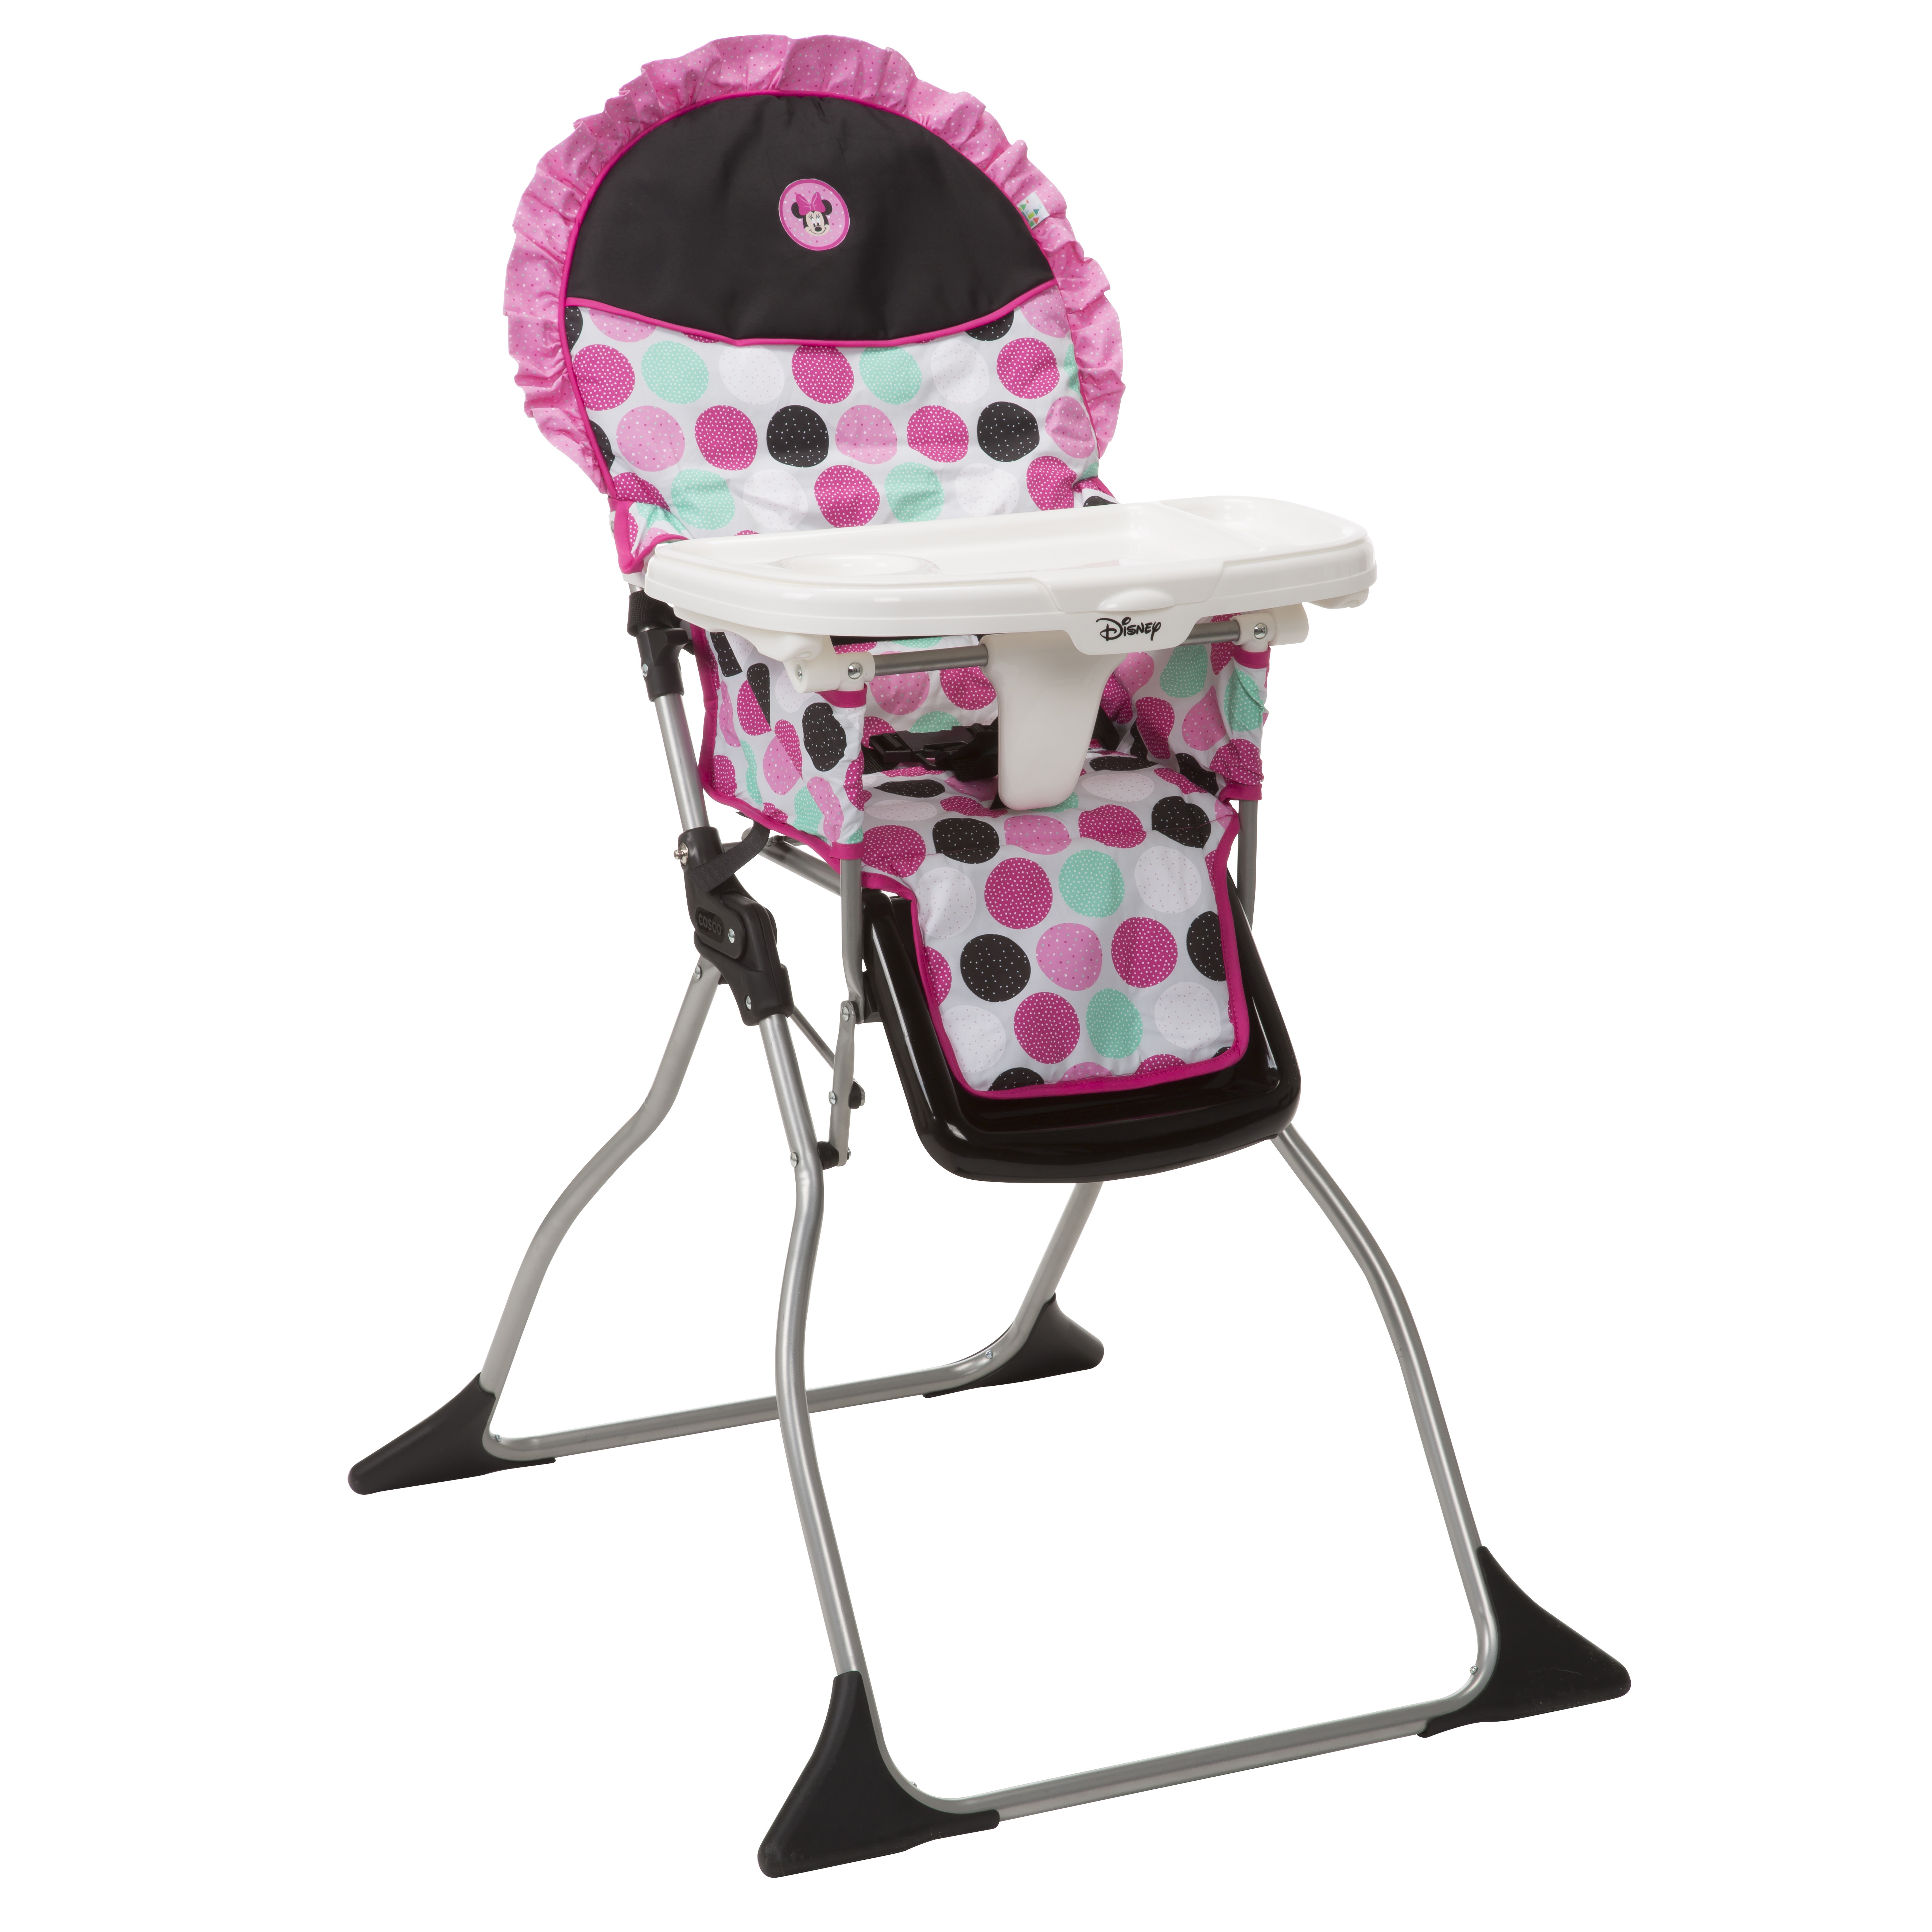 Disney Baby Simple Fold Plus High Chair, Minnie Dotty